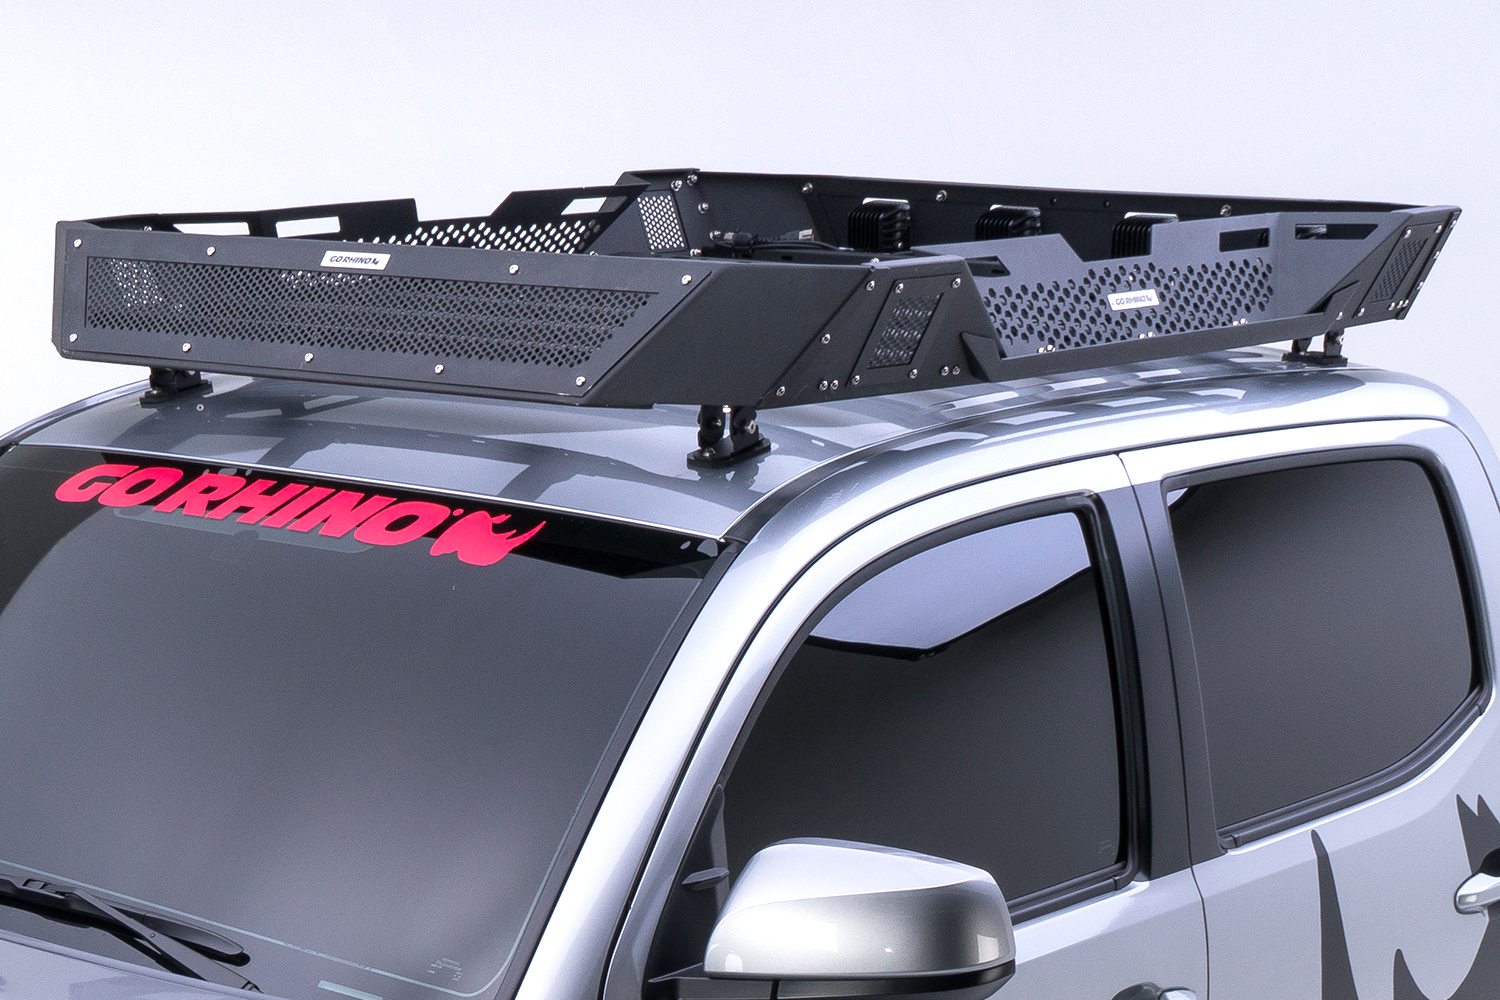 Silverado Roof Rack Home Design Ideas And Pictures